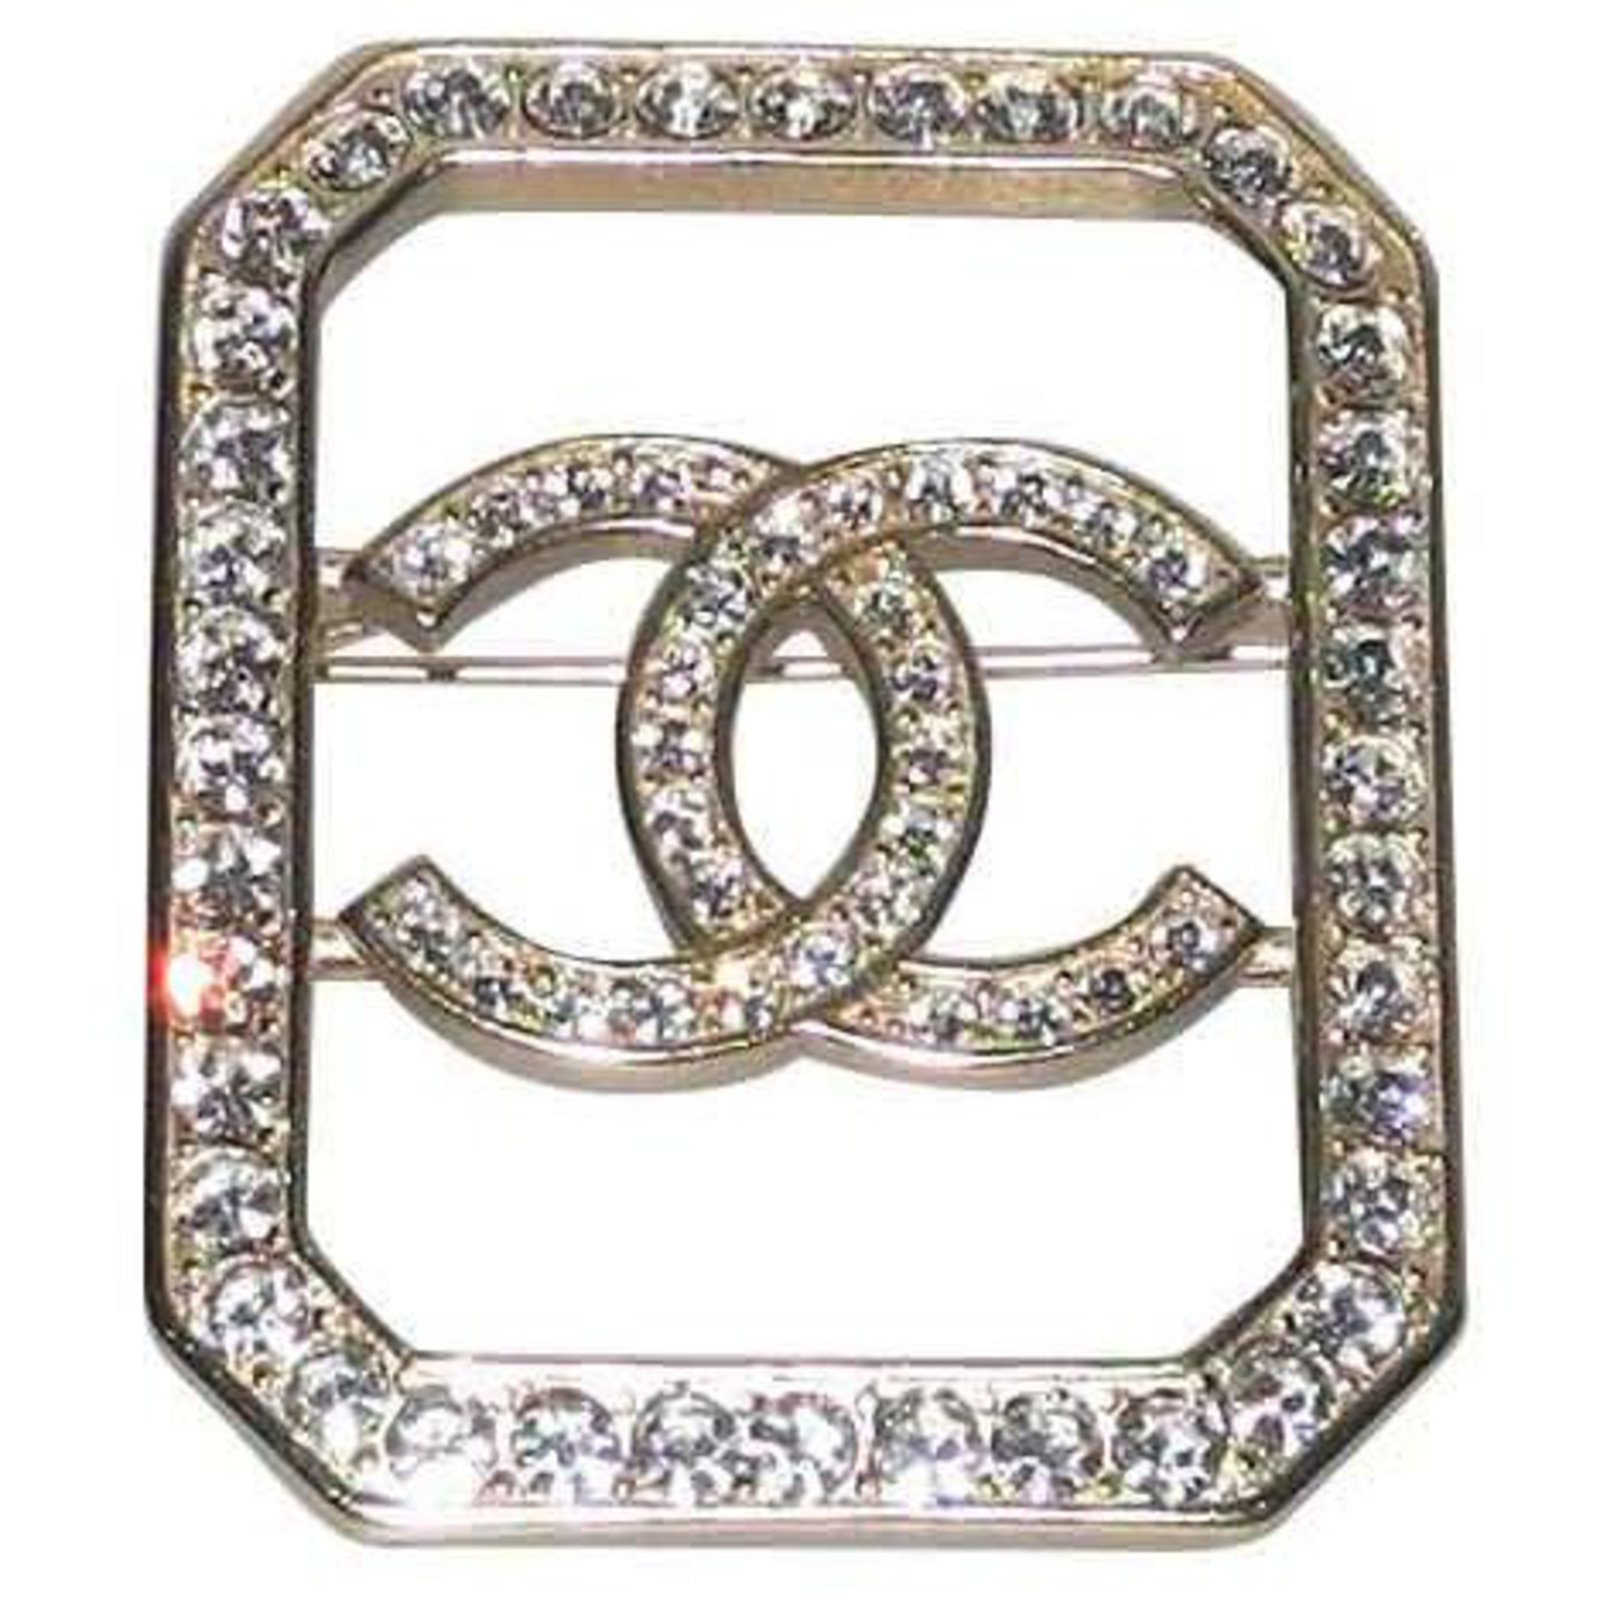 Chanel brooch gold metal and rhinestones, Collection 2018 superb